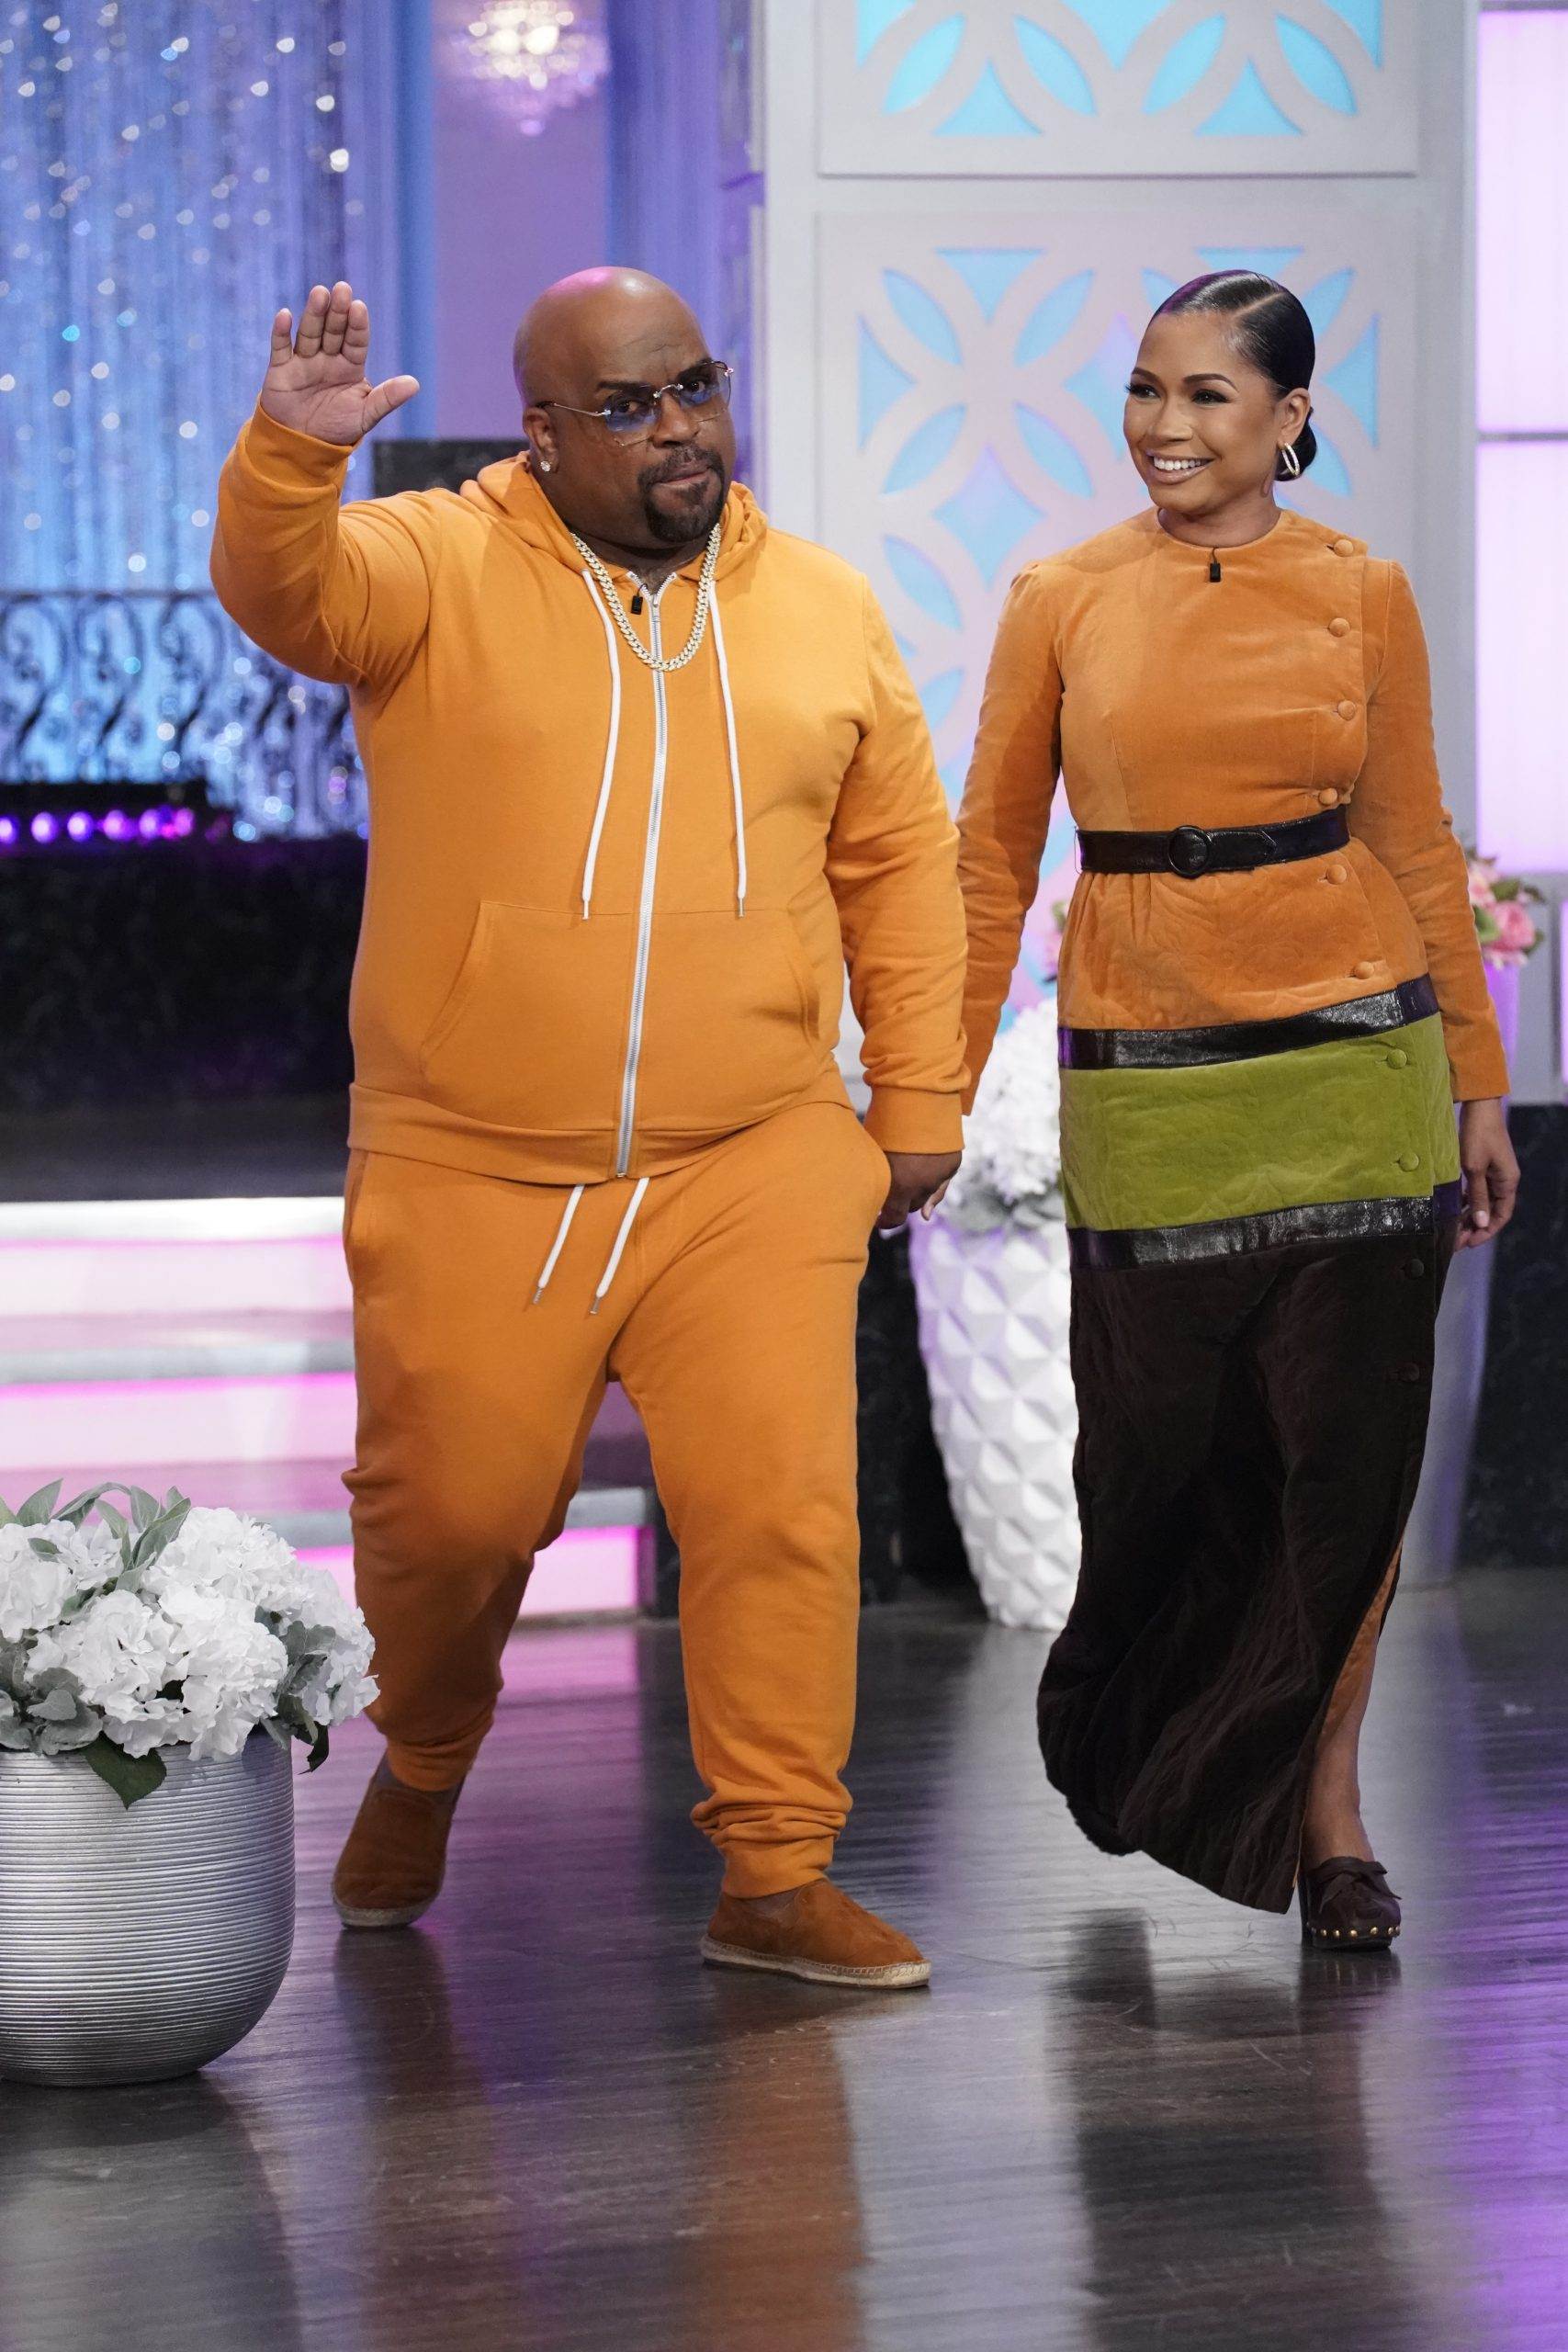 CeeLo Green & Fiancée Shani James Stop By The Real,Explains Why They Haven't Gotten Married Yet